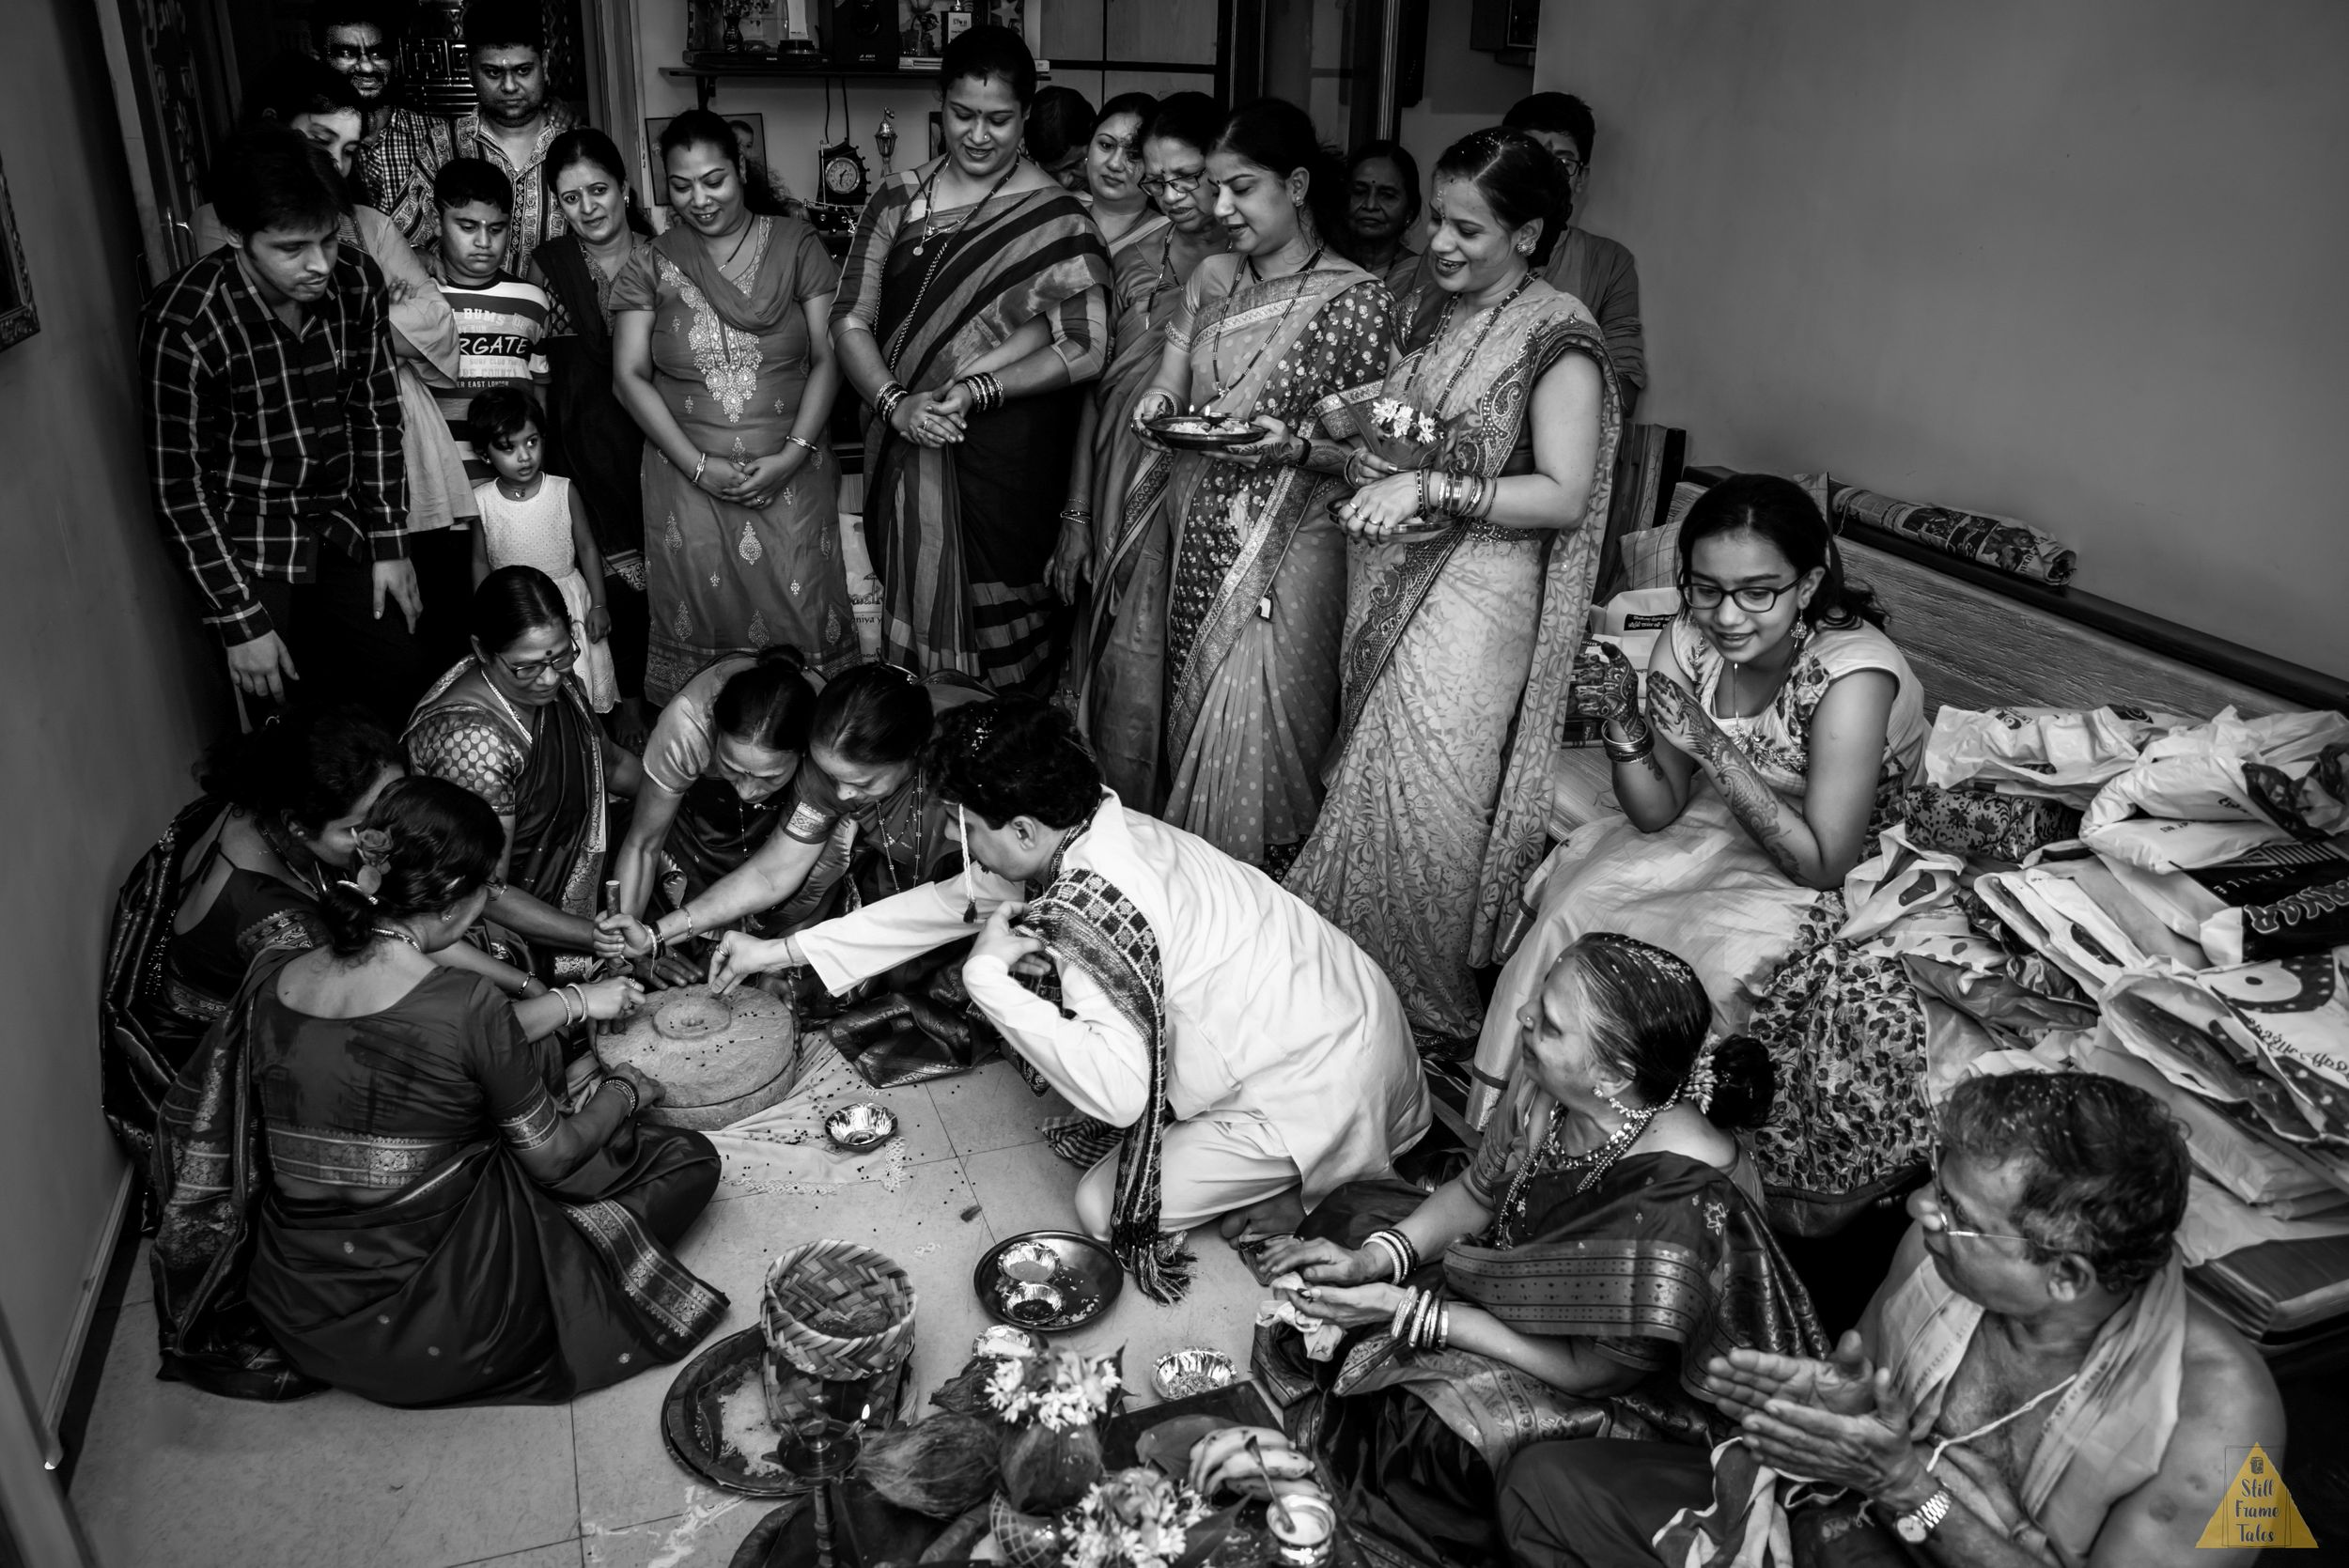 Family & groom performing wedding day ritual at home